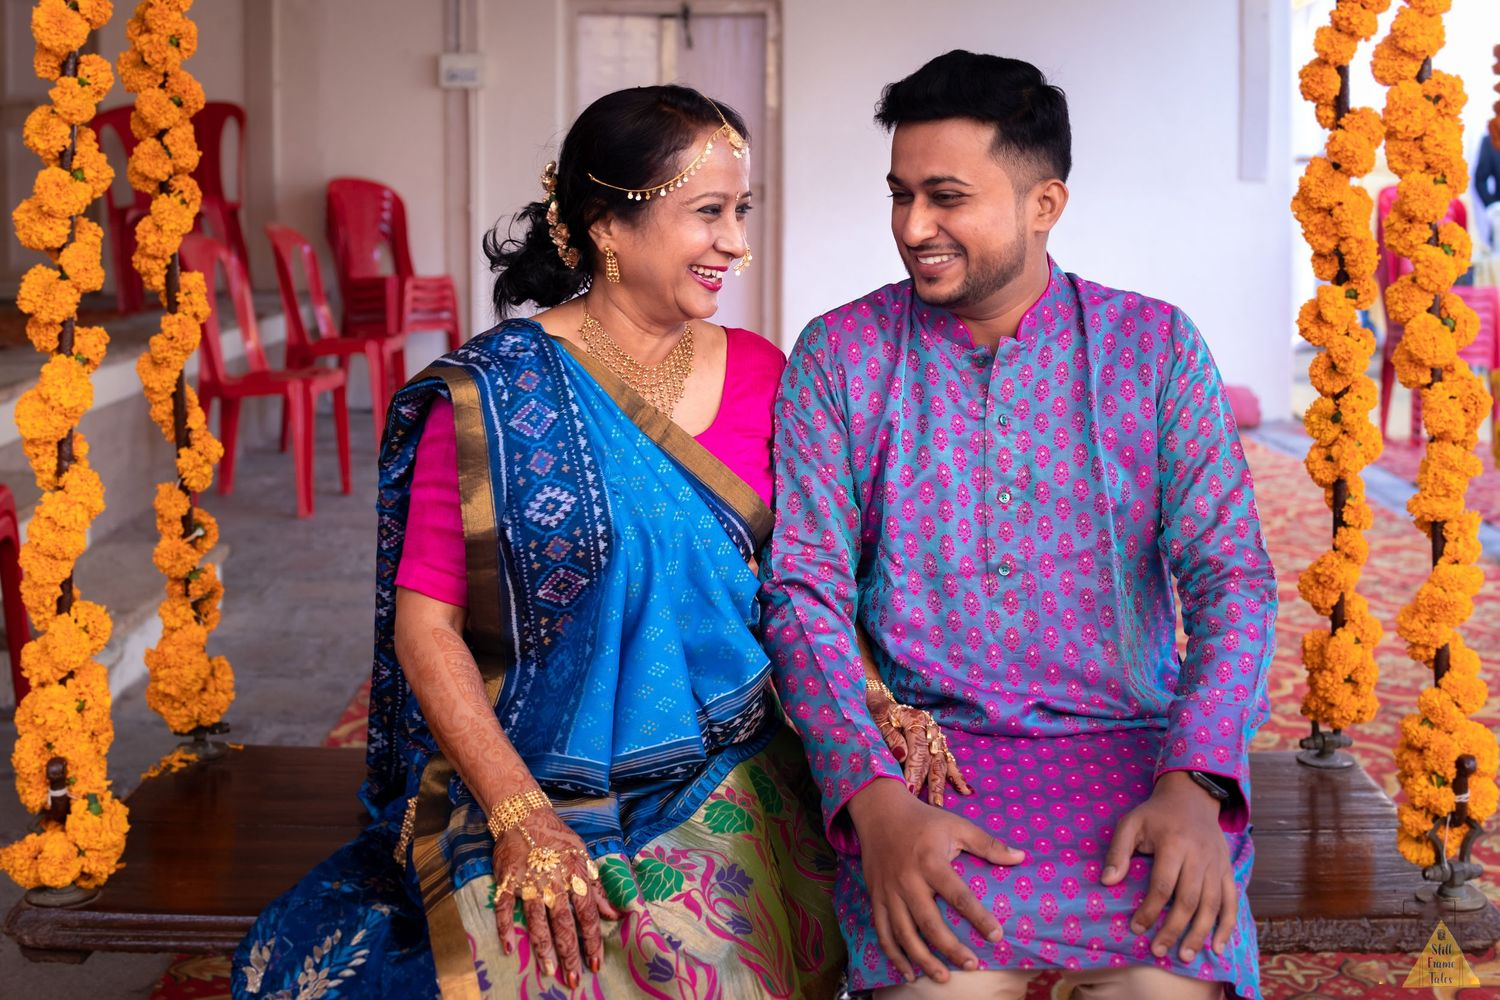 Groom sharing candid moment with mother at his destination wedding